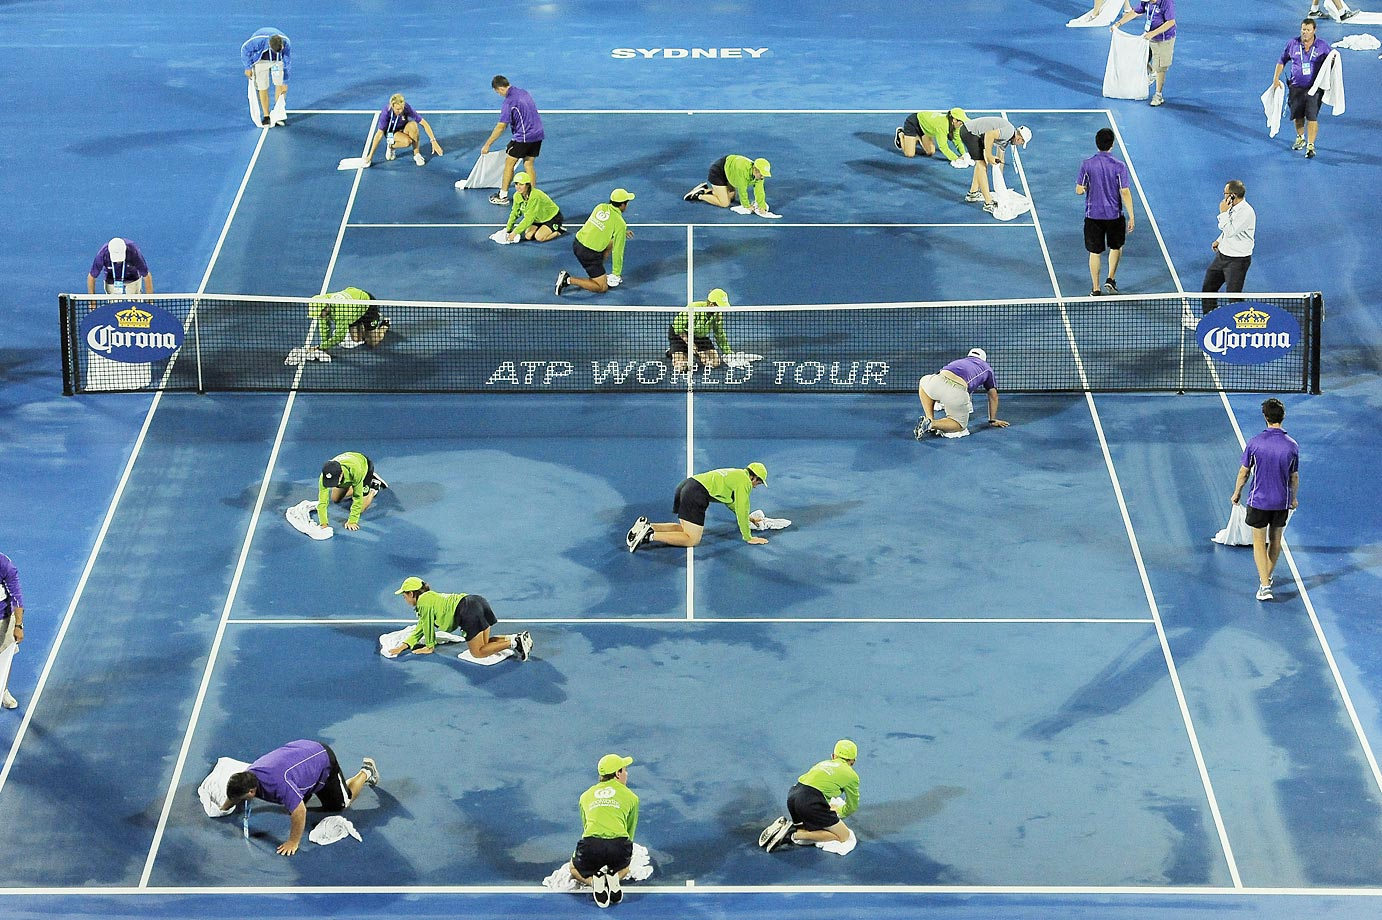 Court staff and ball kids work to dry the court ahead of the first-round match between Nick Kyrgios and Jerzy Janowicz during day three of the Sydney International.